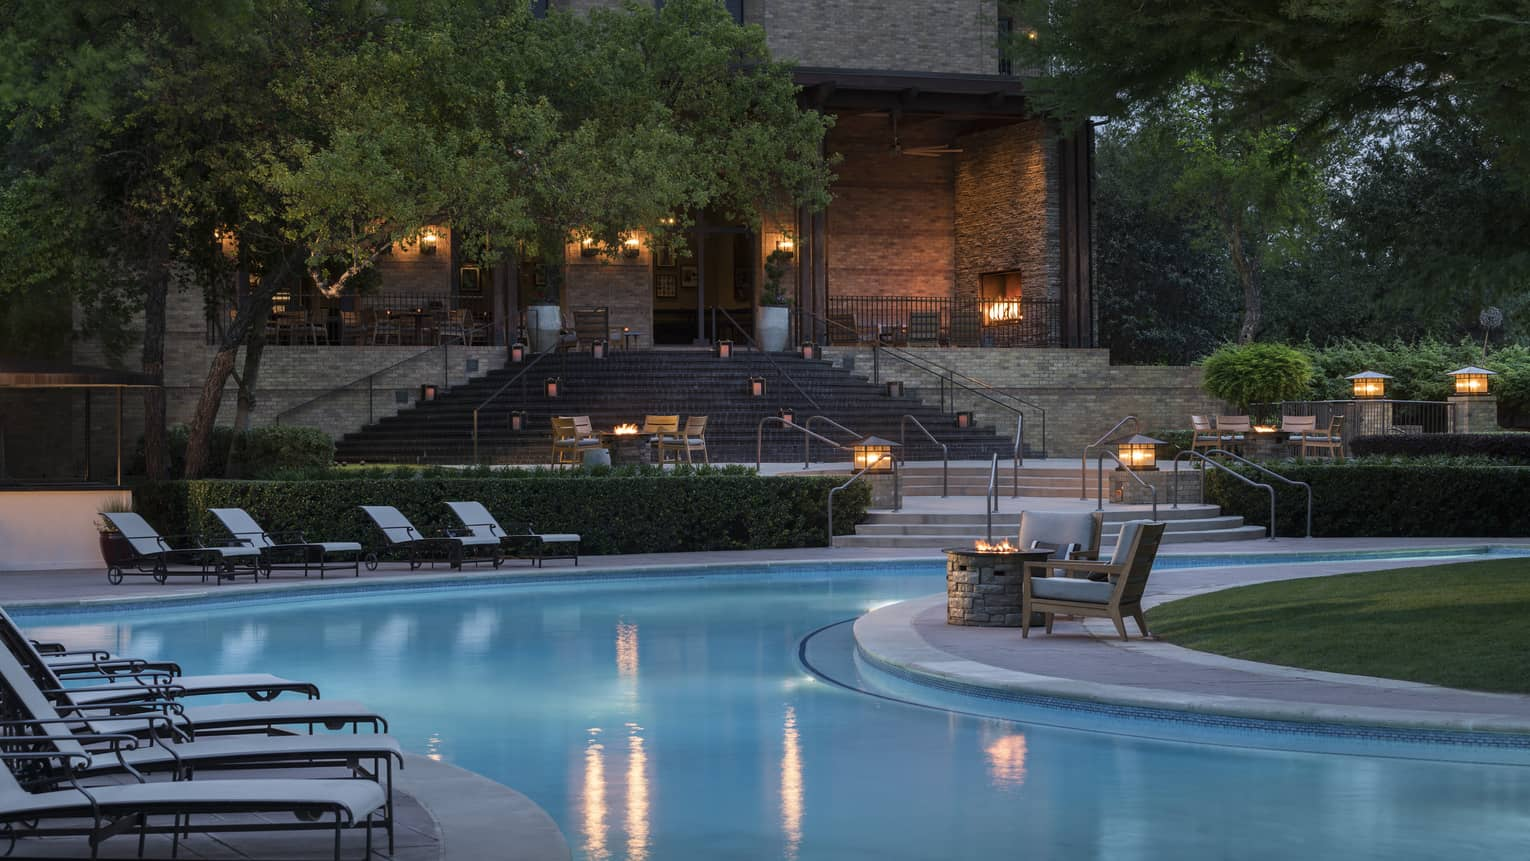 Fire pits, lanterns, lounge chairs around outdoor swimming pool at dusk